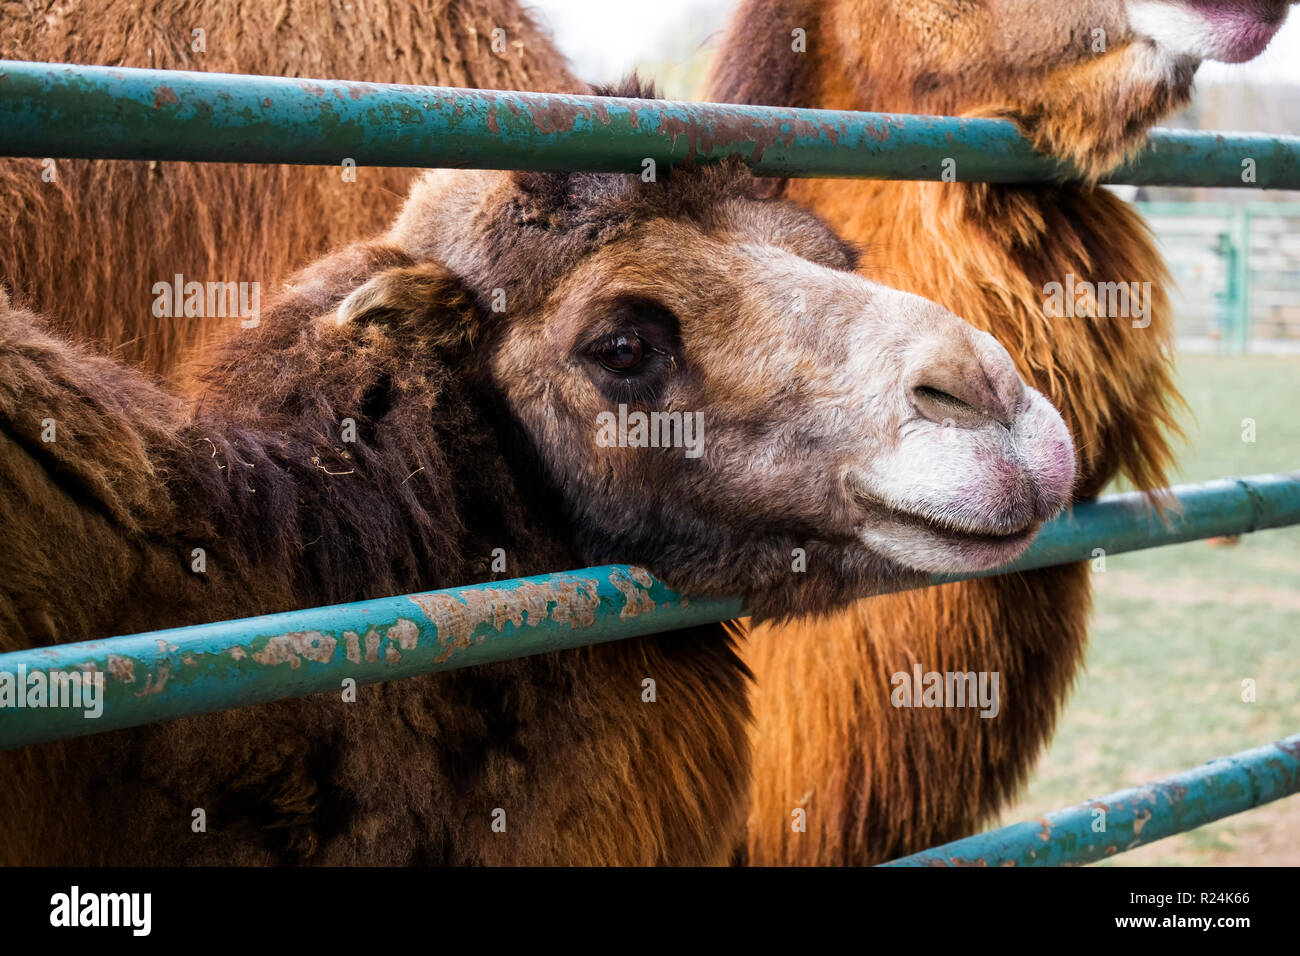 Brown Bactrian camel stuck his head through the fence and watching with sadness in his eyes (Camelus bactrianus) - Stock Image